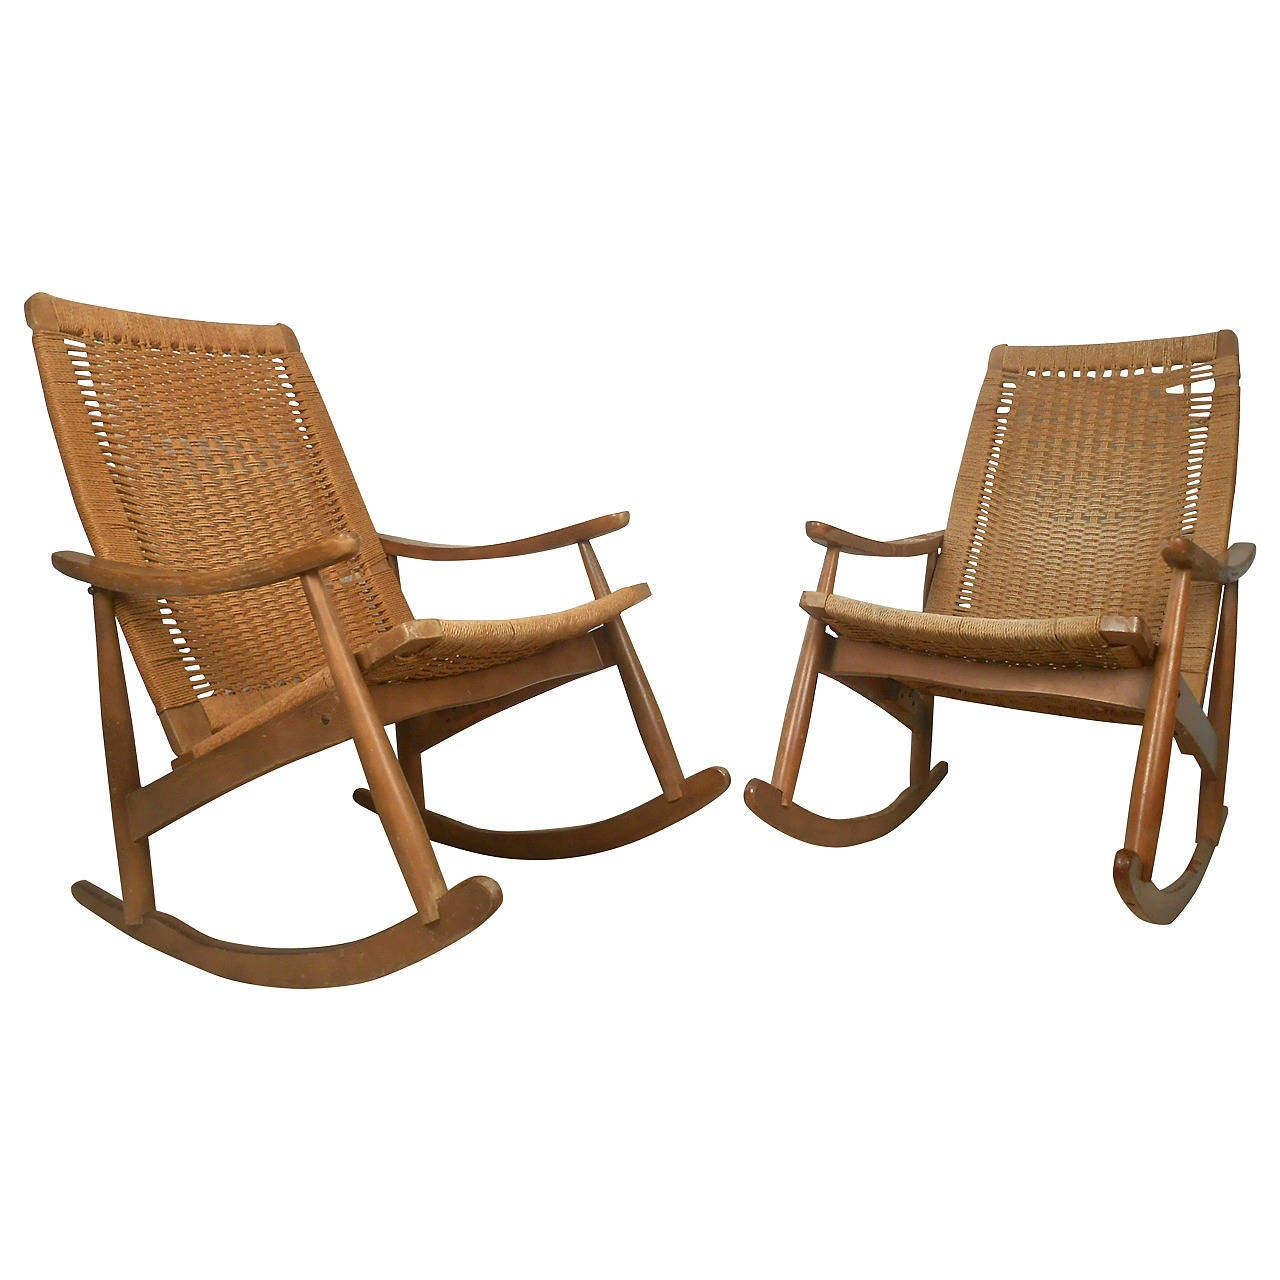 Pair of Vintage Rope Seat Rocking Chairs